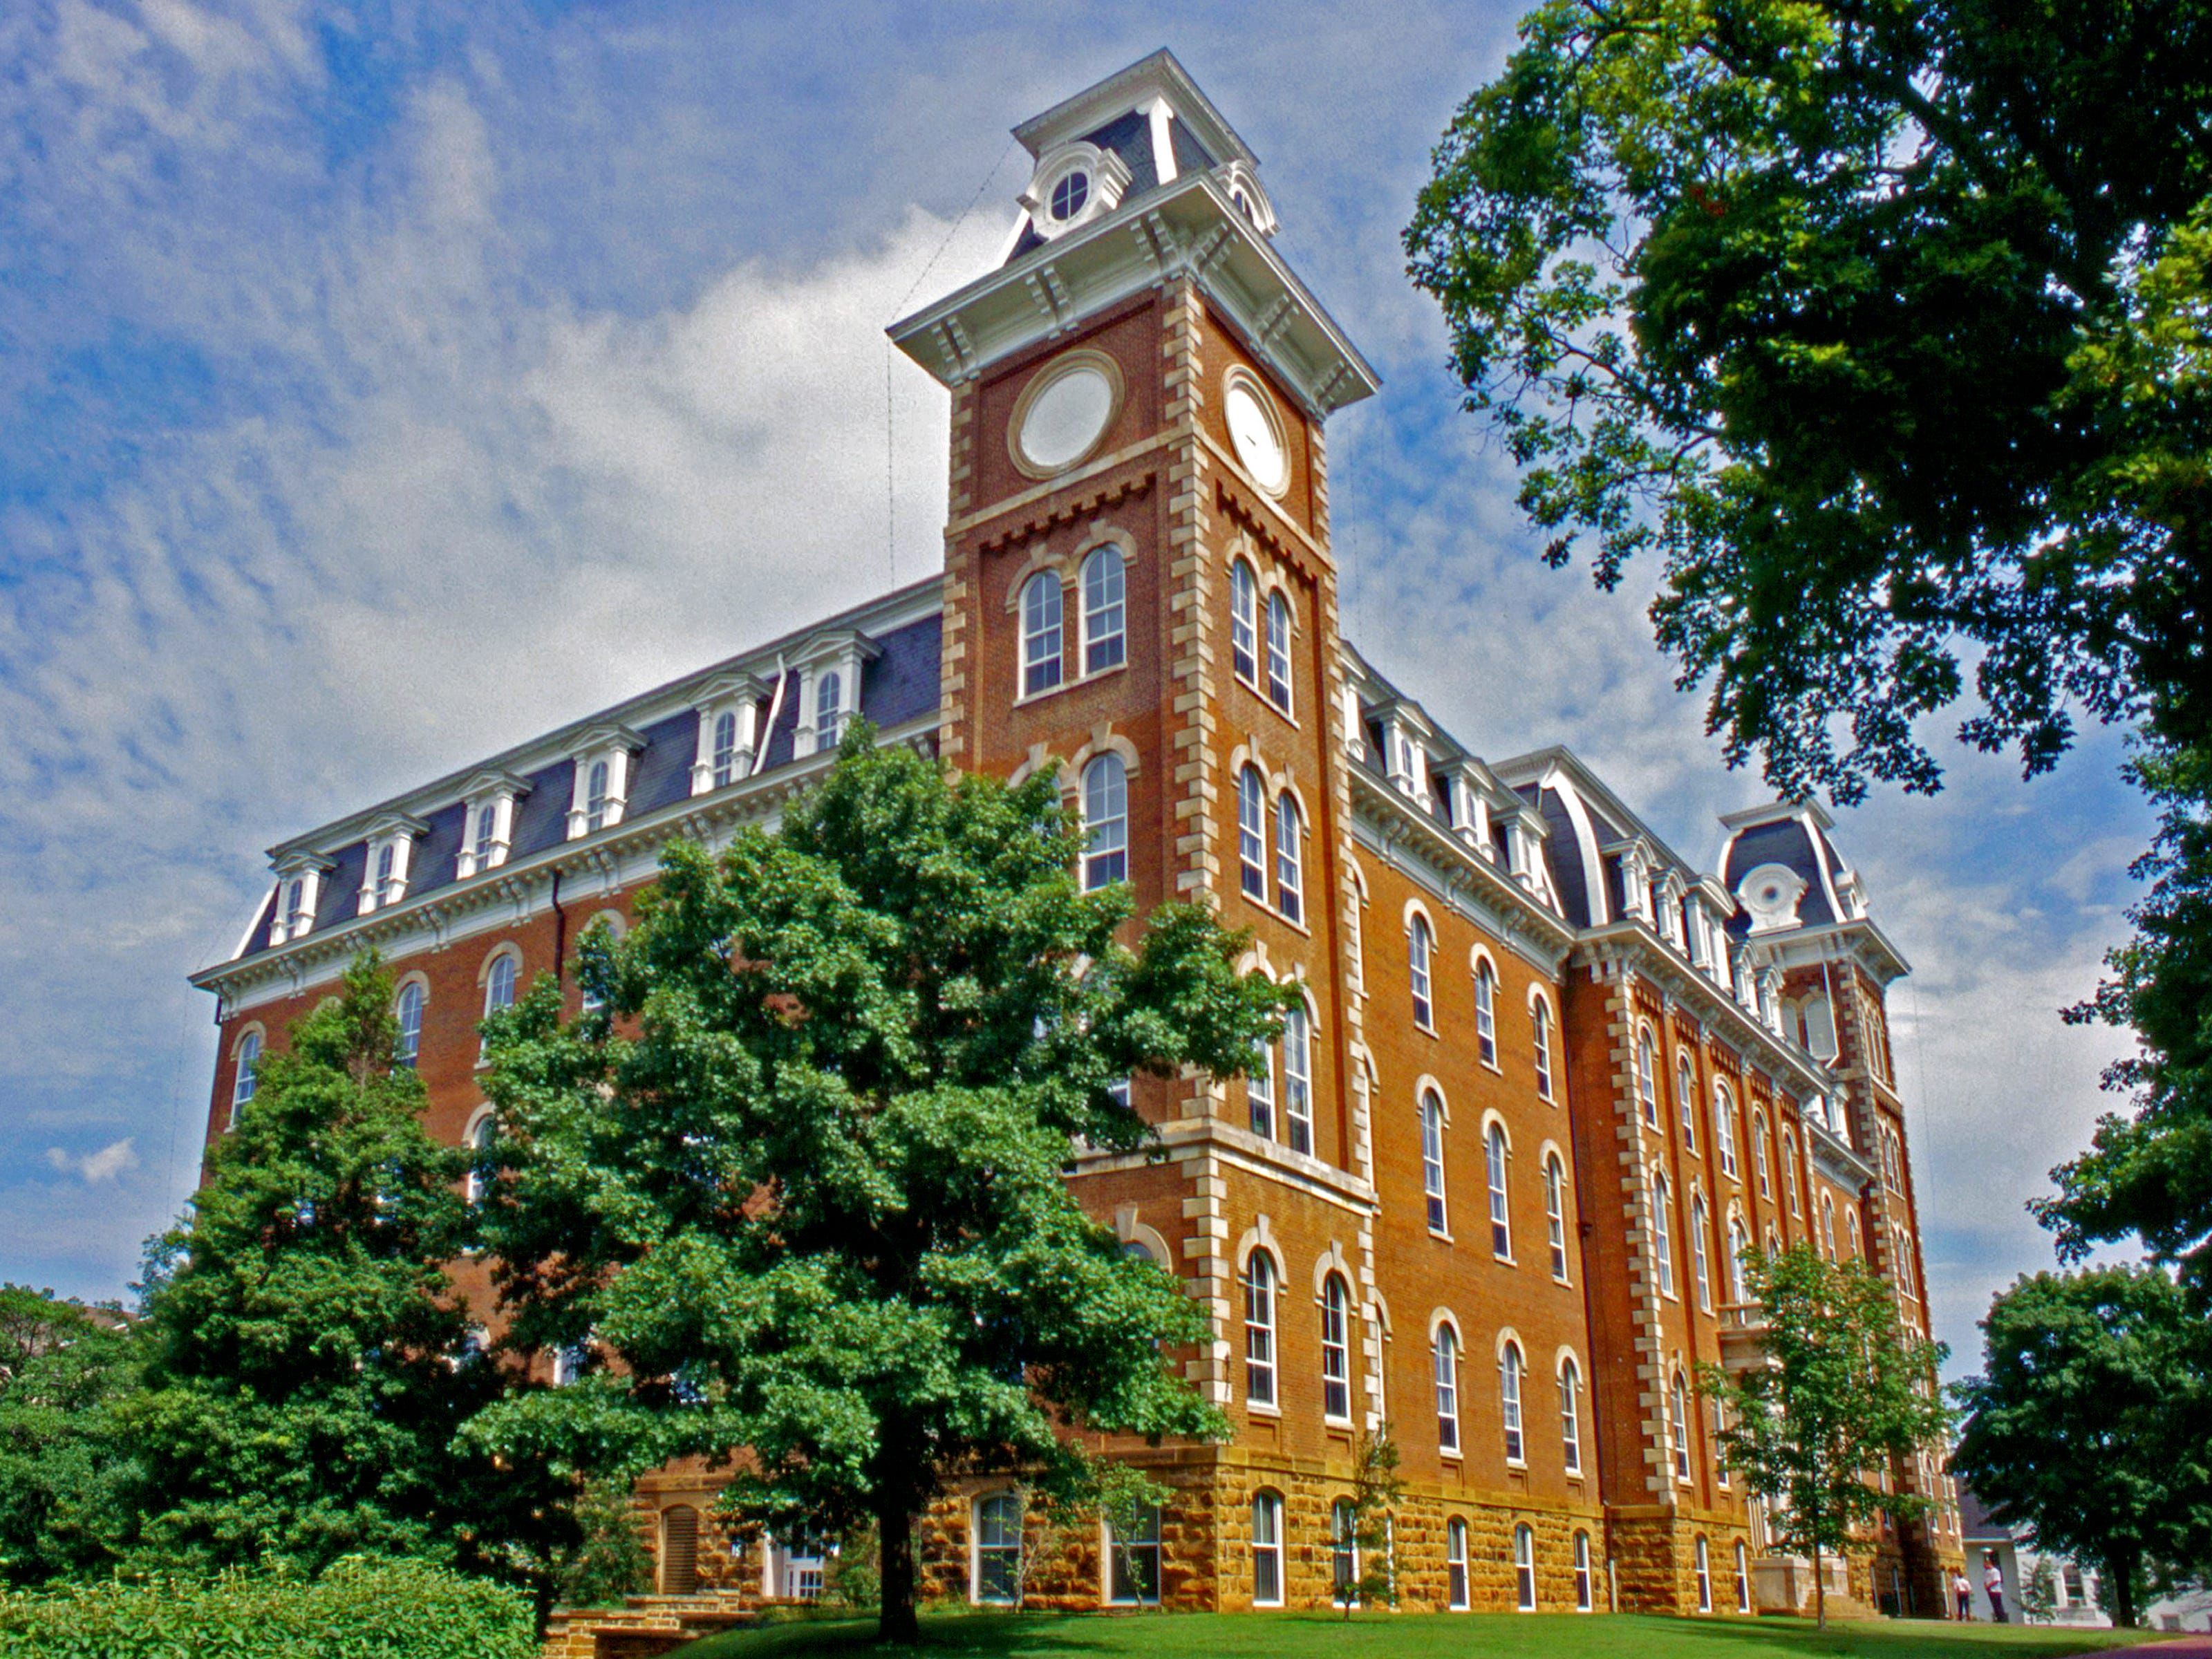 Arkansas: Old Main was the first permanent building erected on the University of Arkansas campus. The south tower contains a clock and the north tower houses the bell.